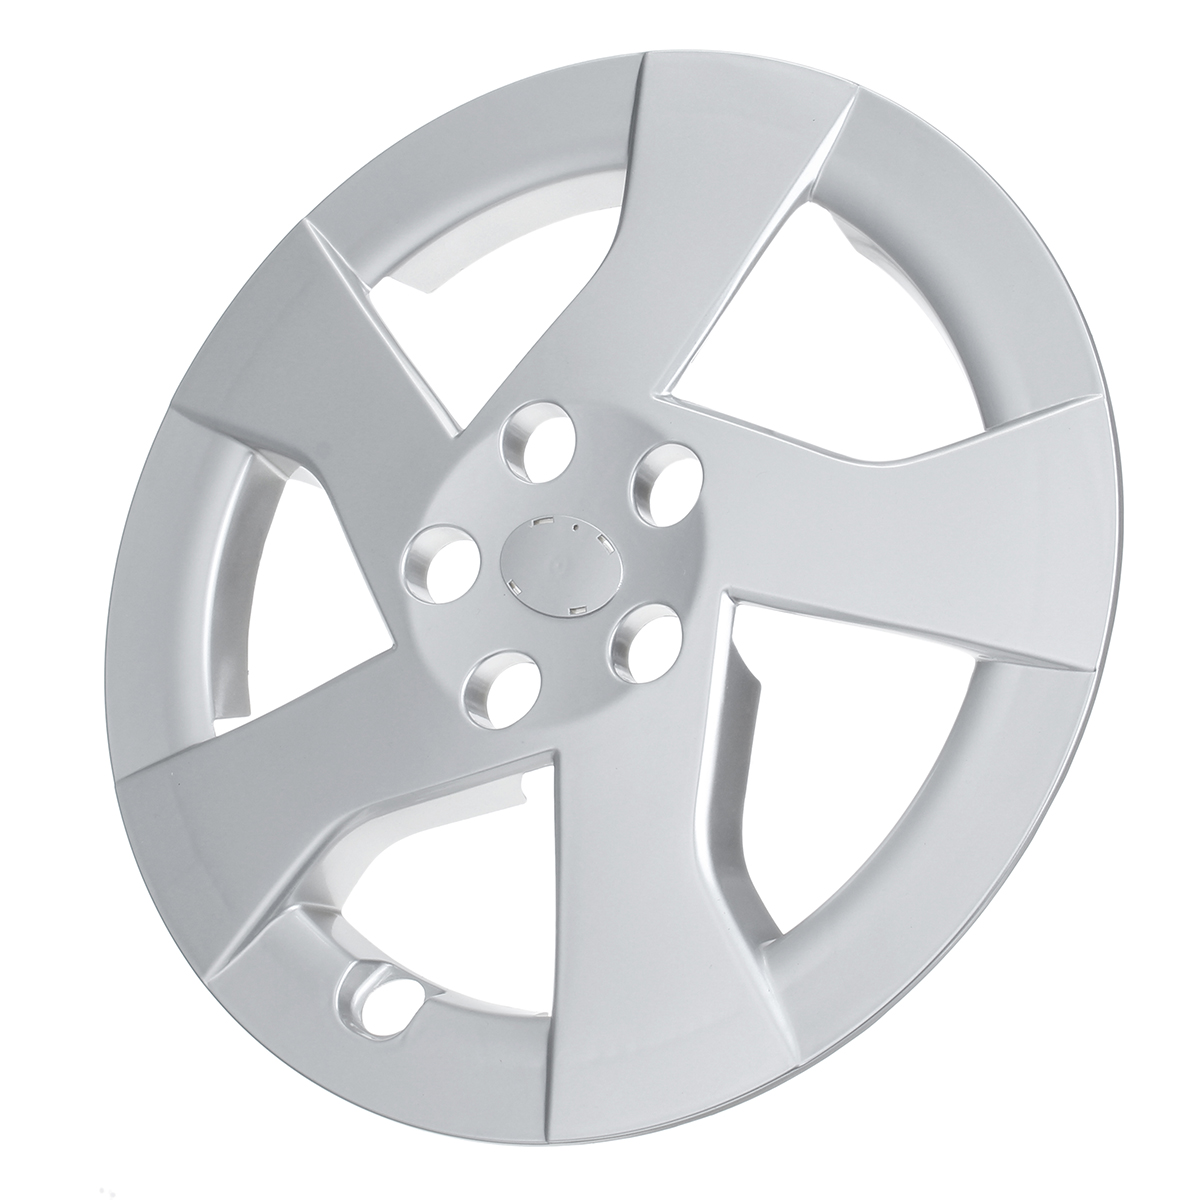 15/'/' Silver Hubcap Wheel Cover For Toyota Prius 2010 2011 PN 42602-47110 61156